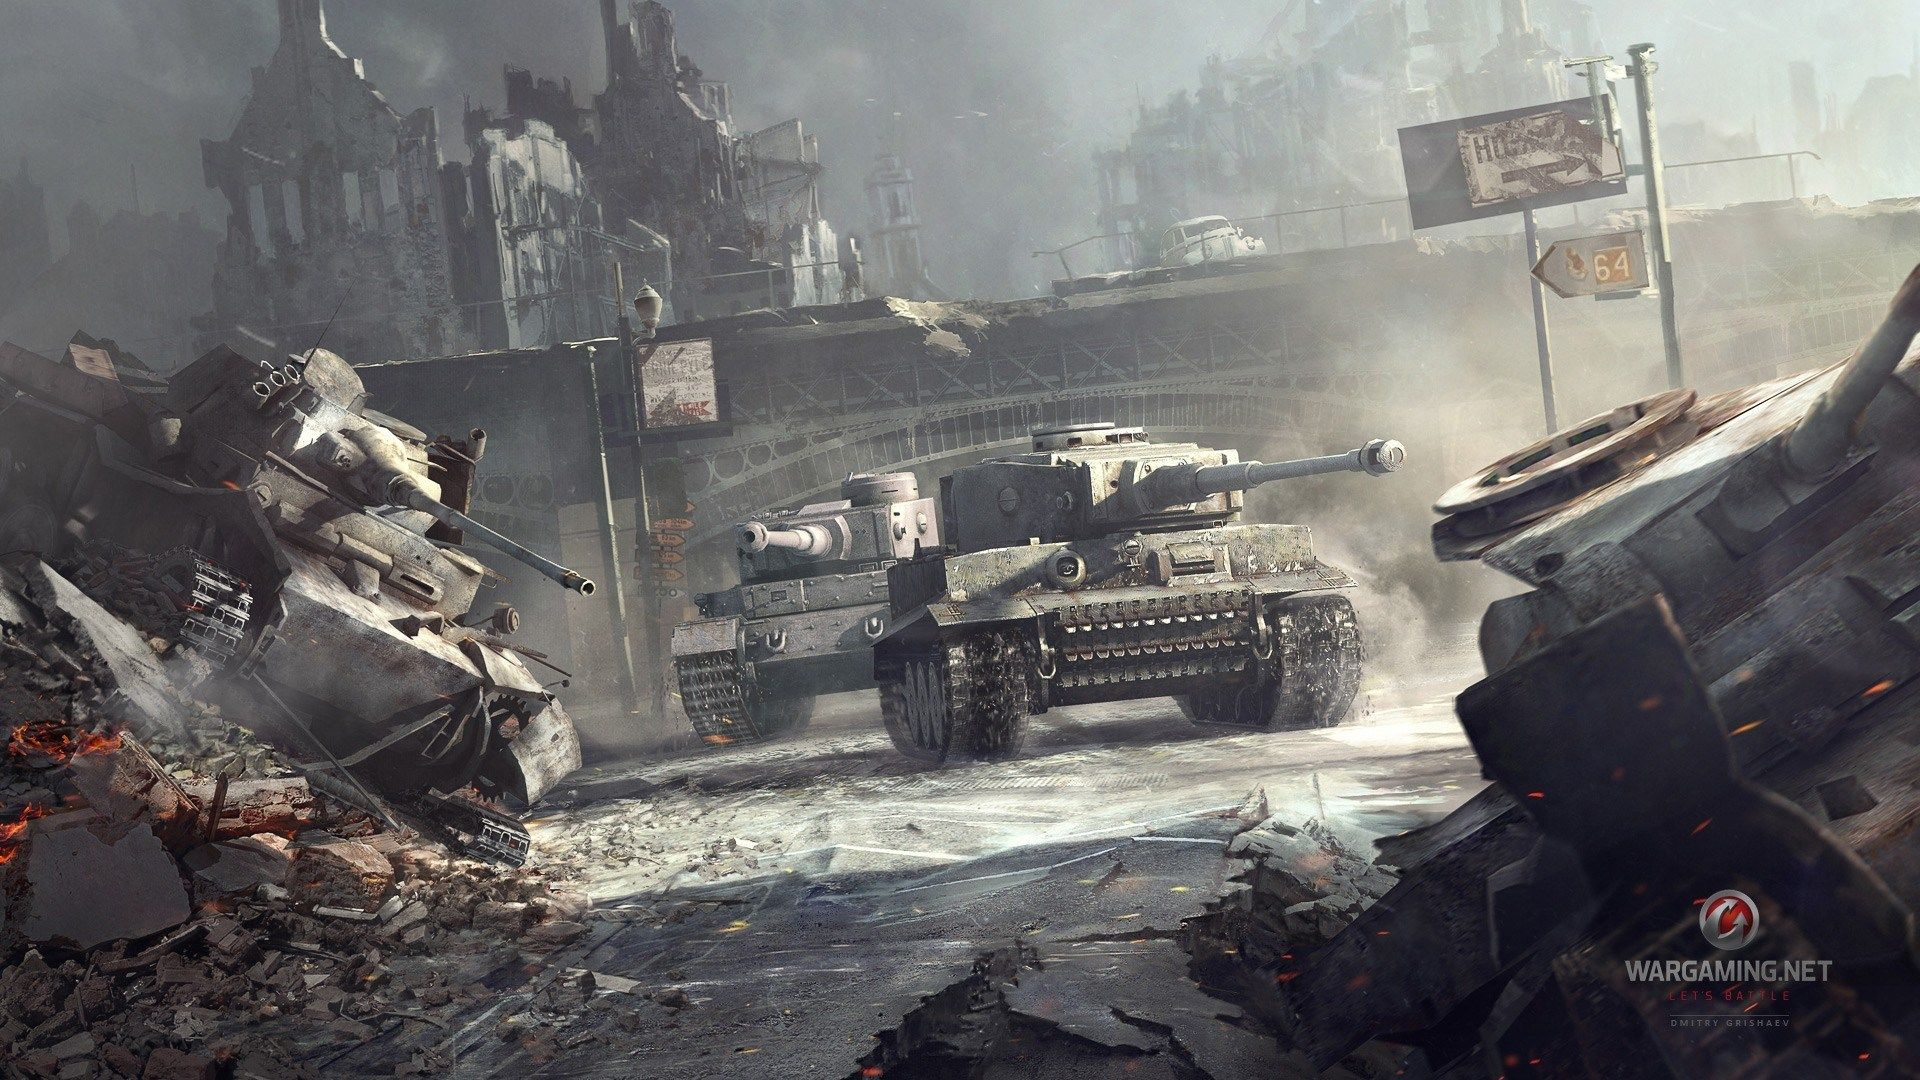 Dickson Jacobson - World of Tanks wallpaper to download - 1920x1080 px